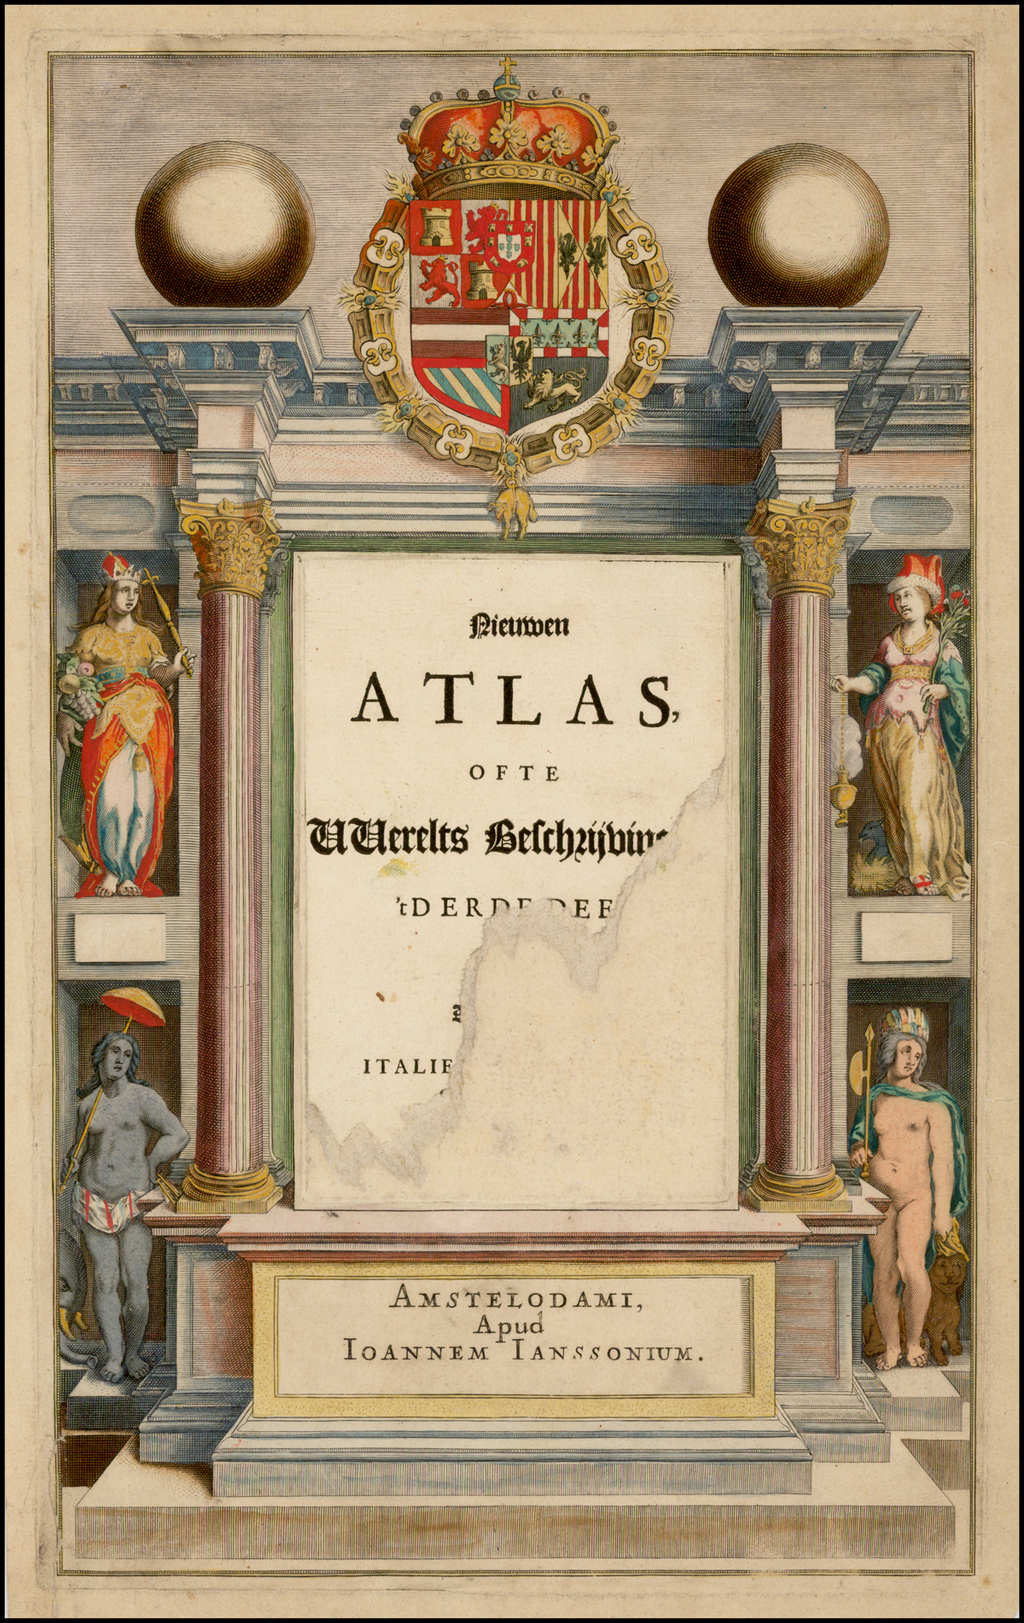 [Title Page] Niewen Atlas . . . (Heightened in Gold!) By Jan Jansson